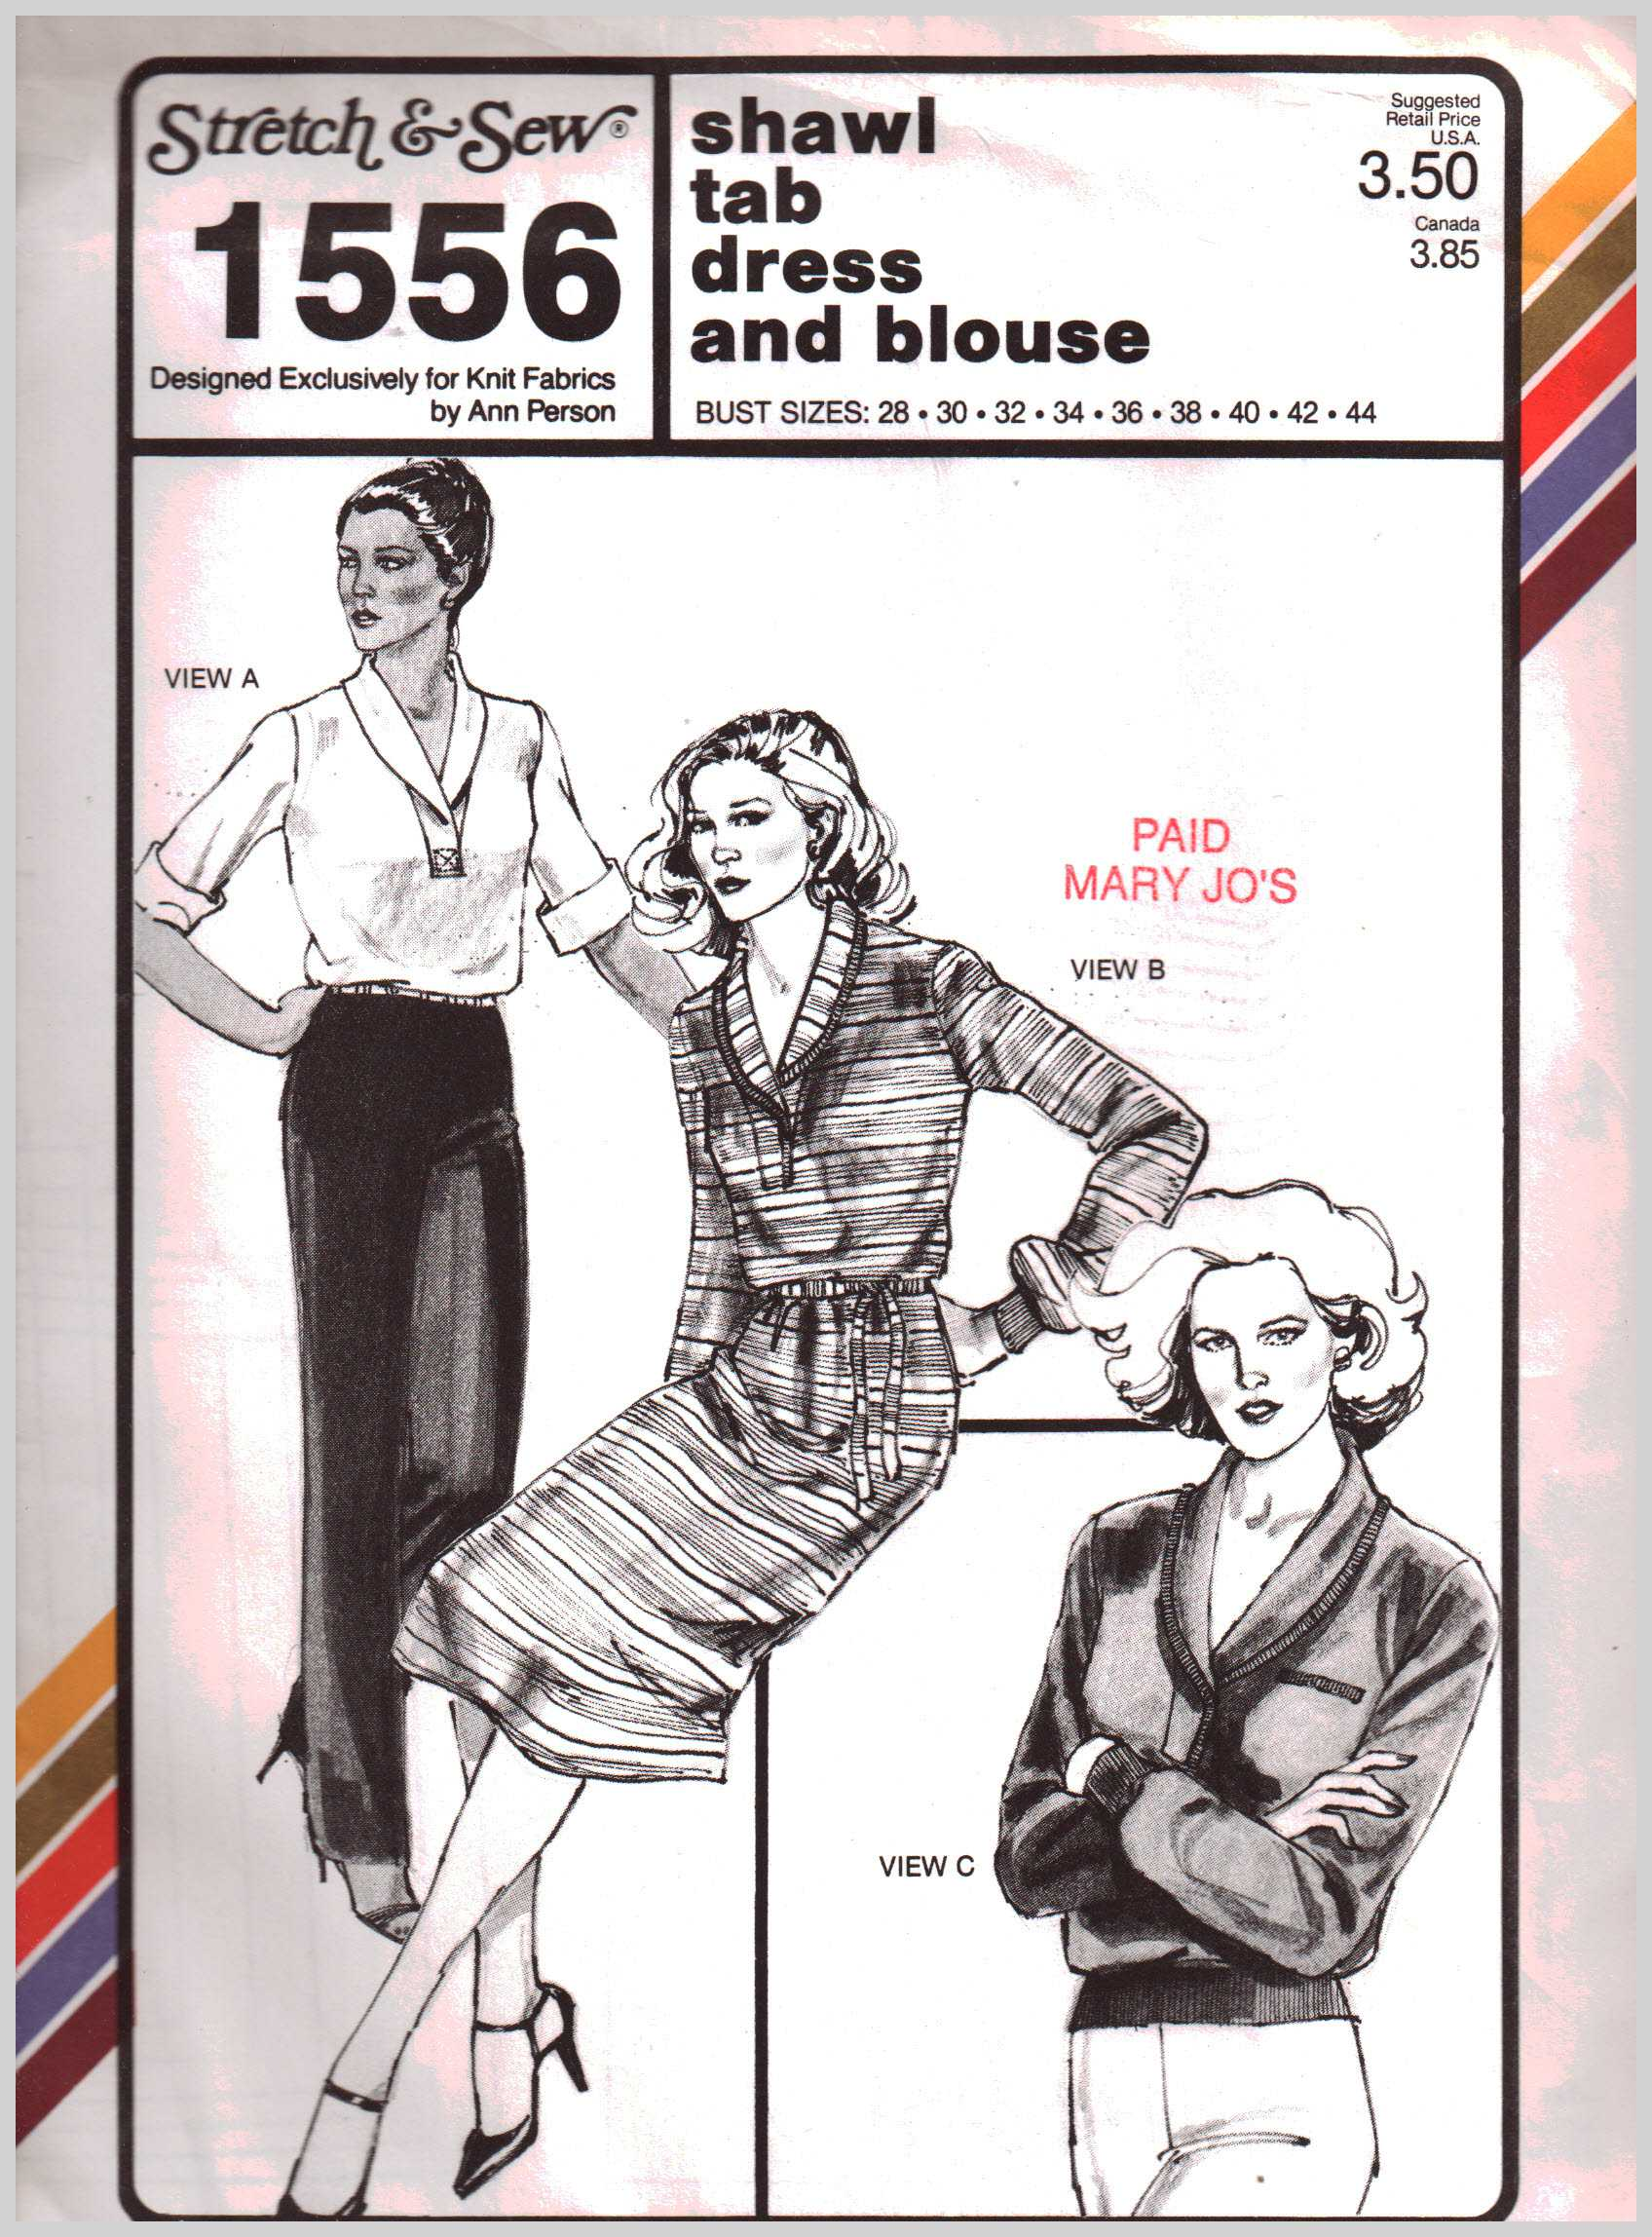 Sewing Patterns - Pattern-Walk Stretch & Sew Sewing Patterns collection